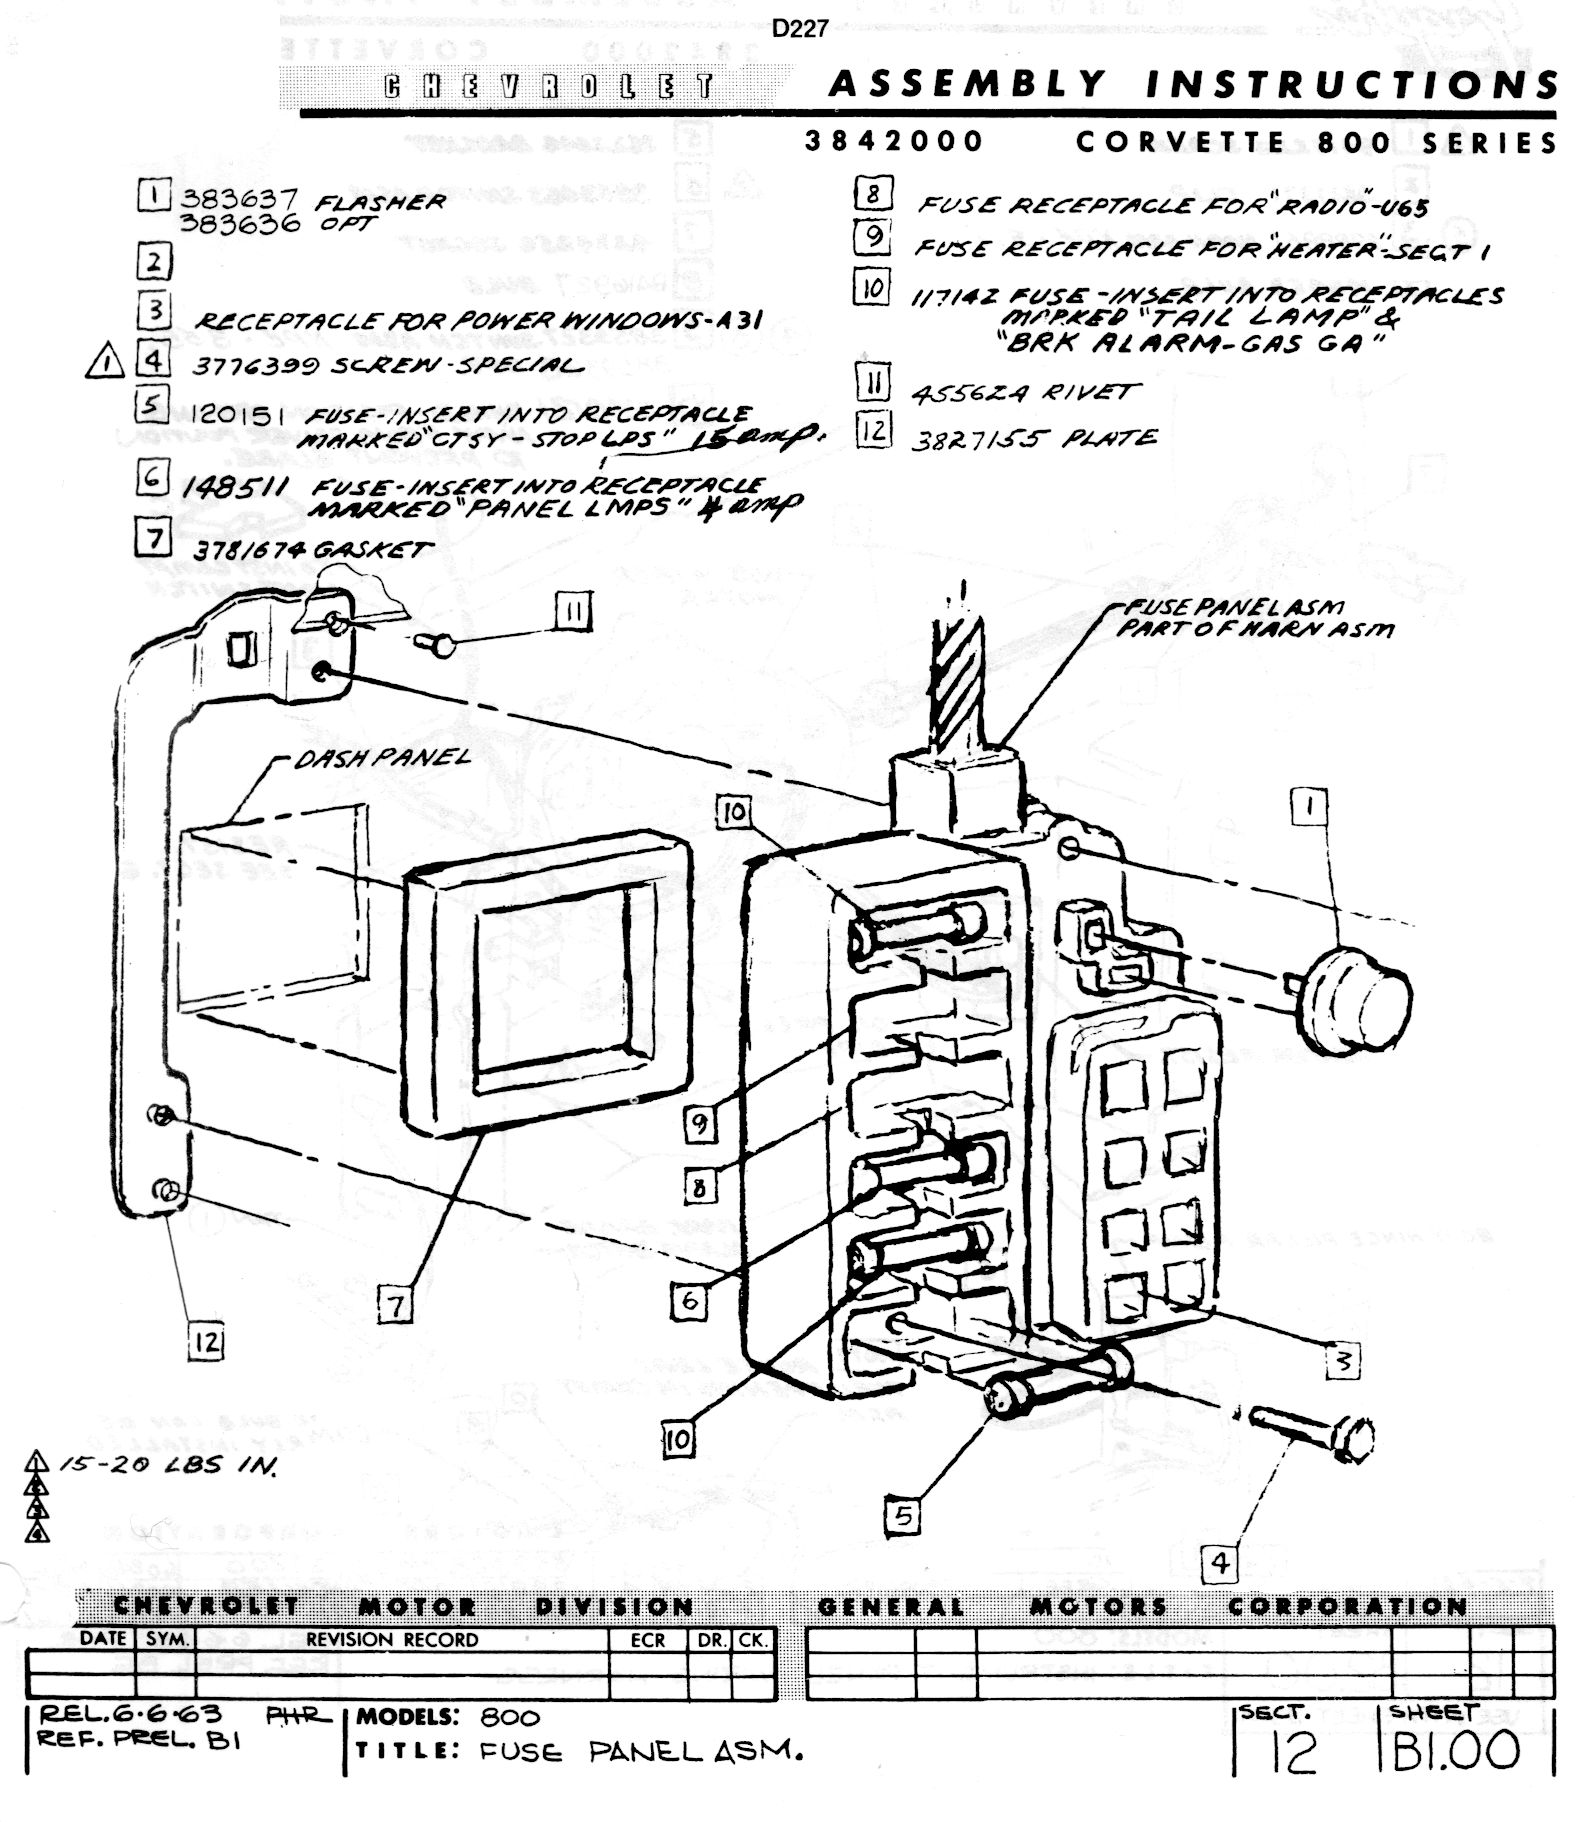 corvette fuse box diagram dgZvxgv corvette fuse box diagram image details 1977 corvette fuse box diagram at gsmportal.co